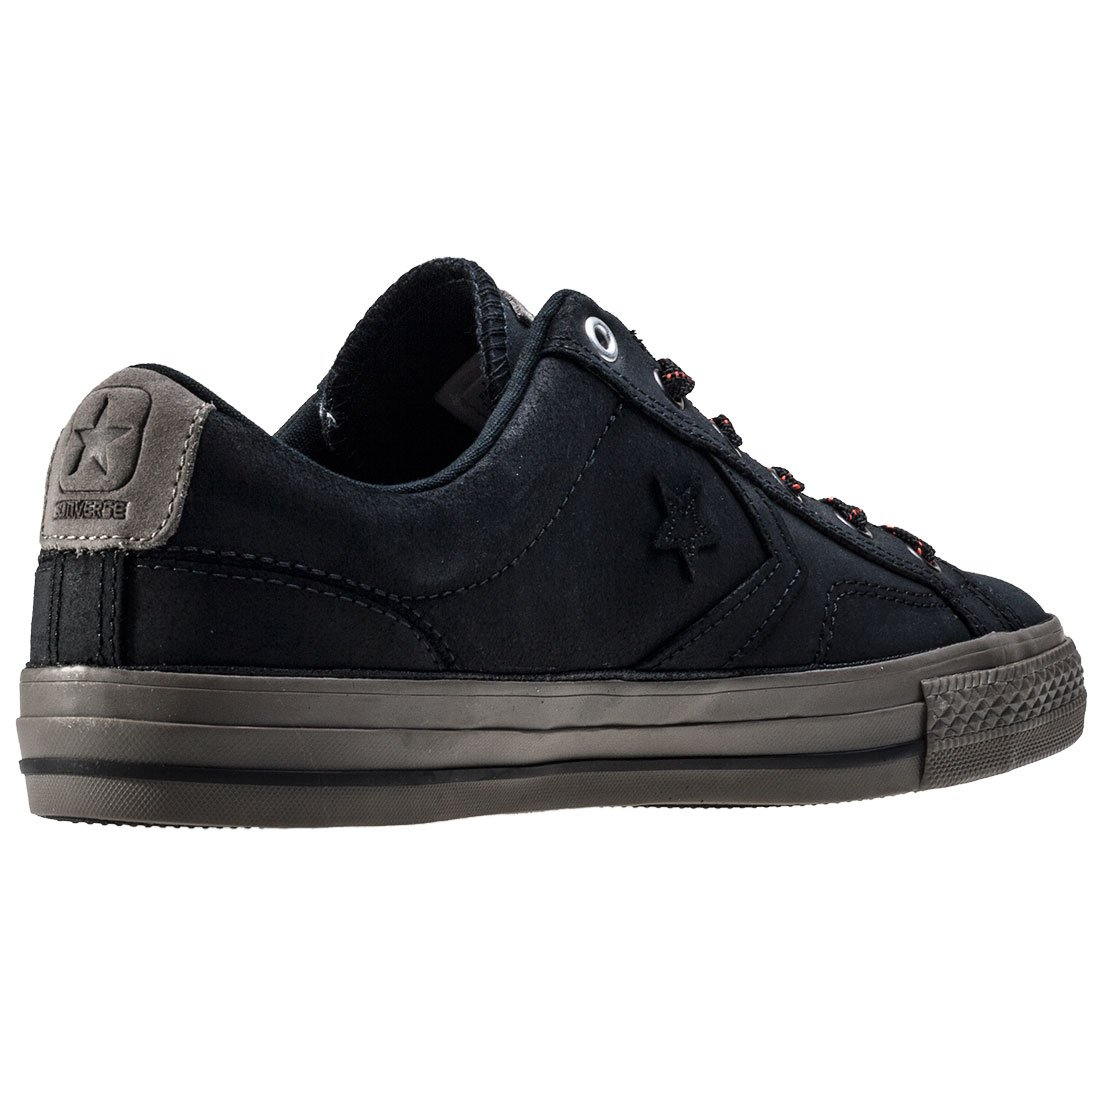 Converse Star Player Premium Leather Ox Trainers Black 11 UK